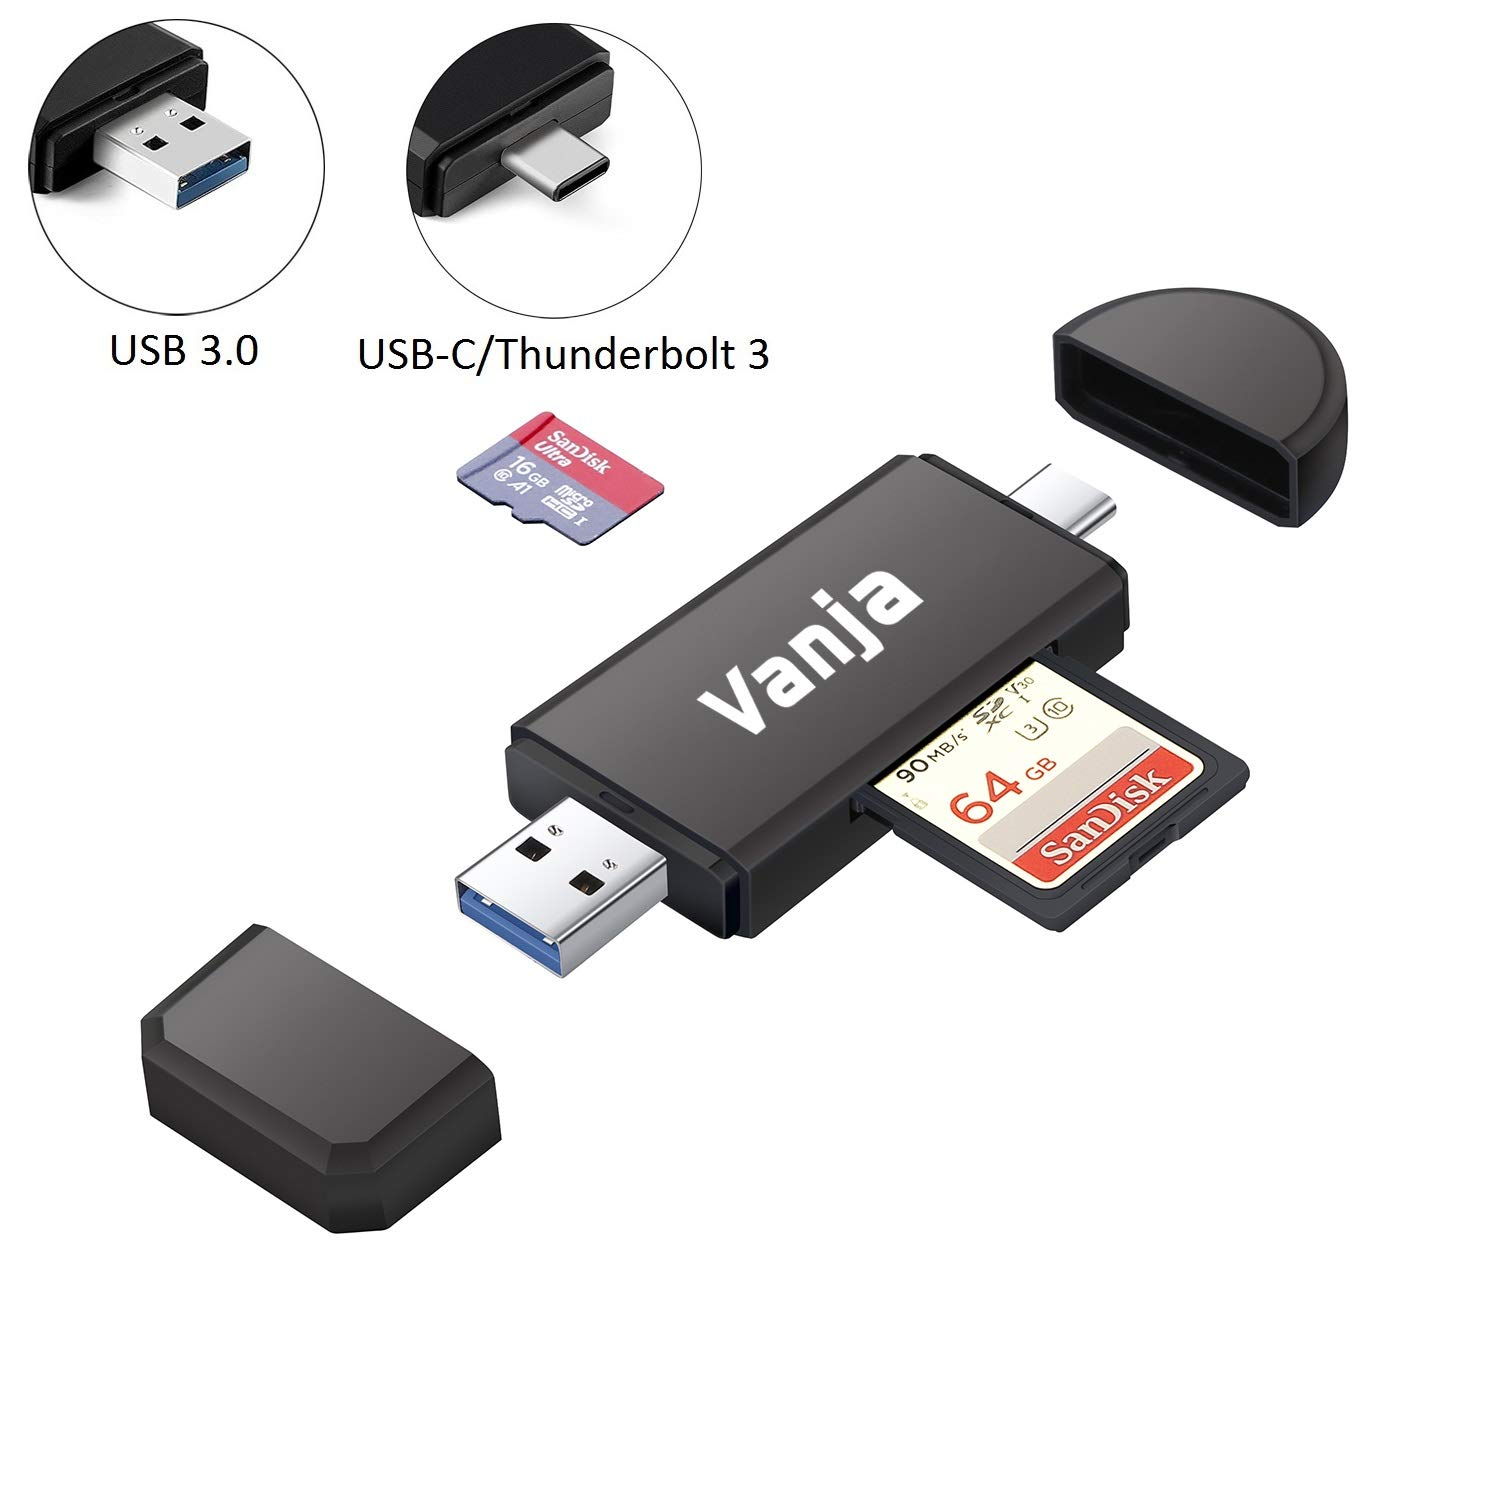 Vanja USB 3.0 SD Card Reader, USB Type C SD/Micro SD Card Reader OTG Adapter for SDXC, SDHC, SD, MMC, RS-MMC, Micro SDXC, Micro SD, Micro SDHC Card and UHS-I Cards